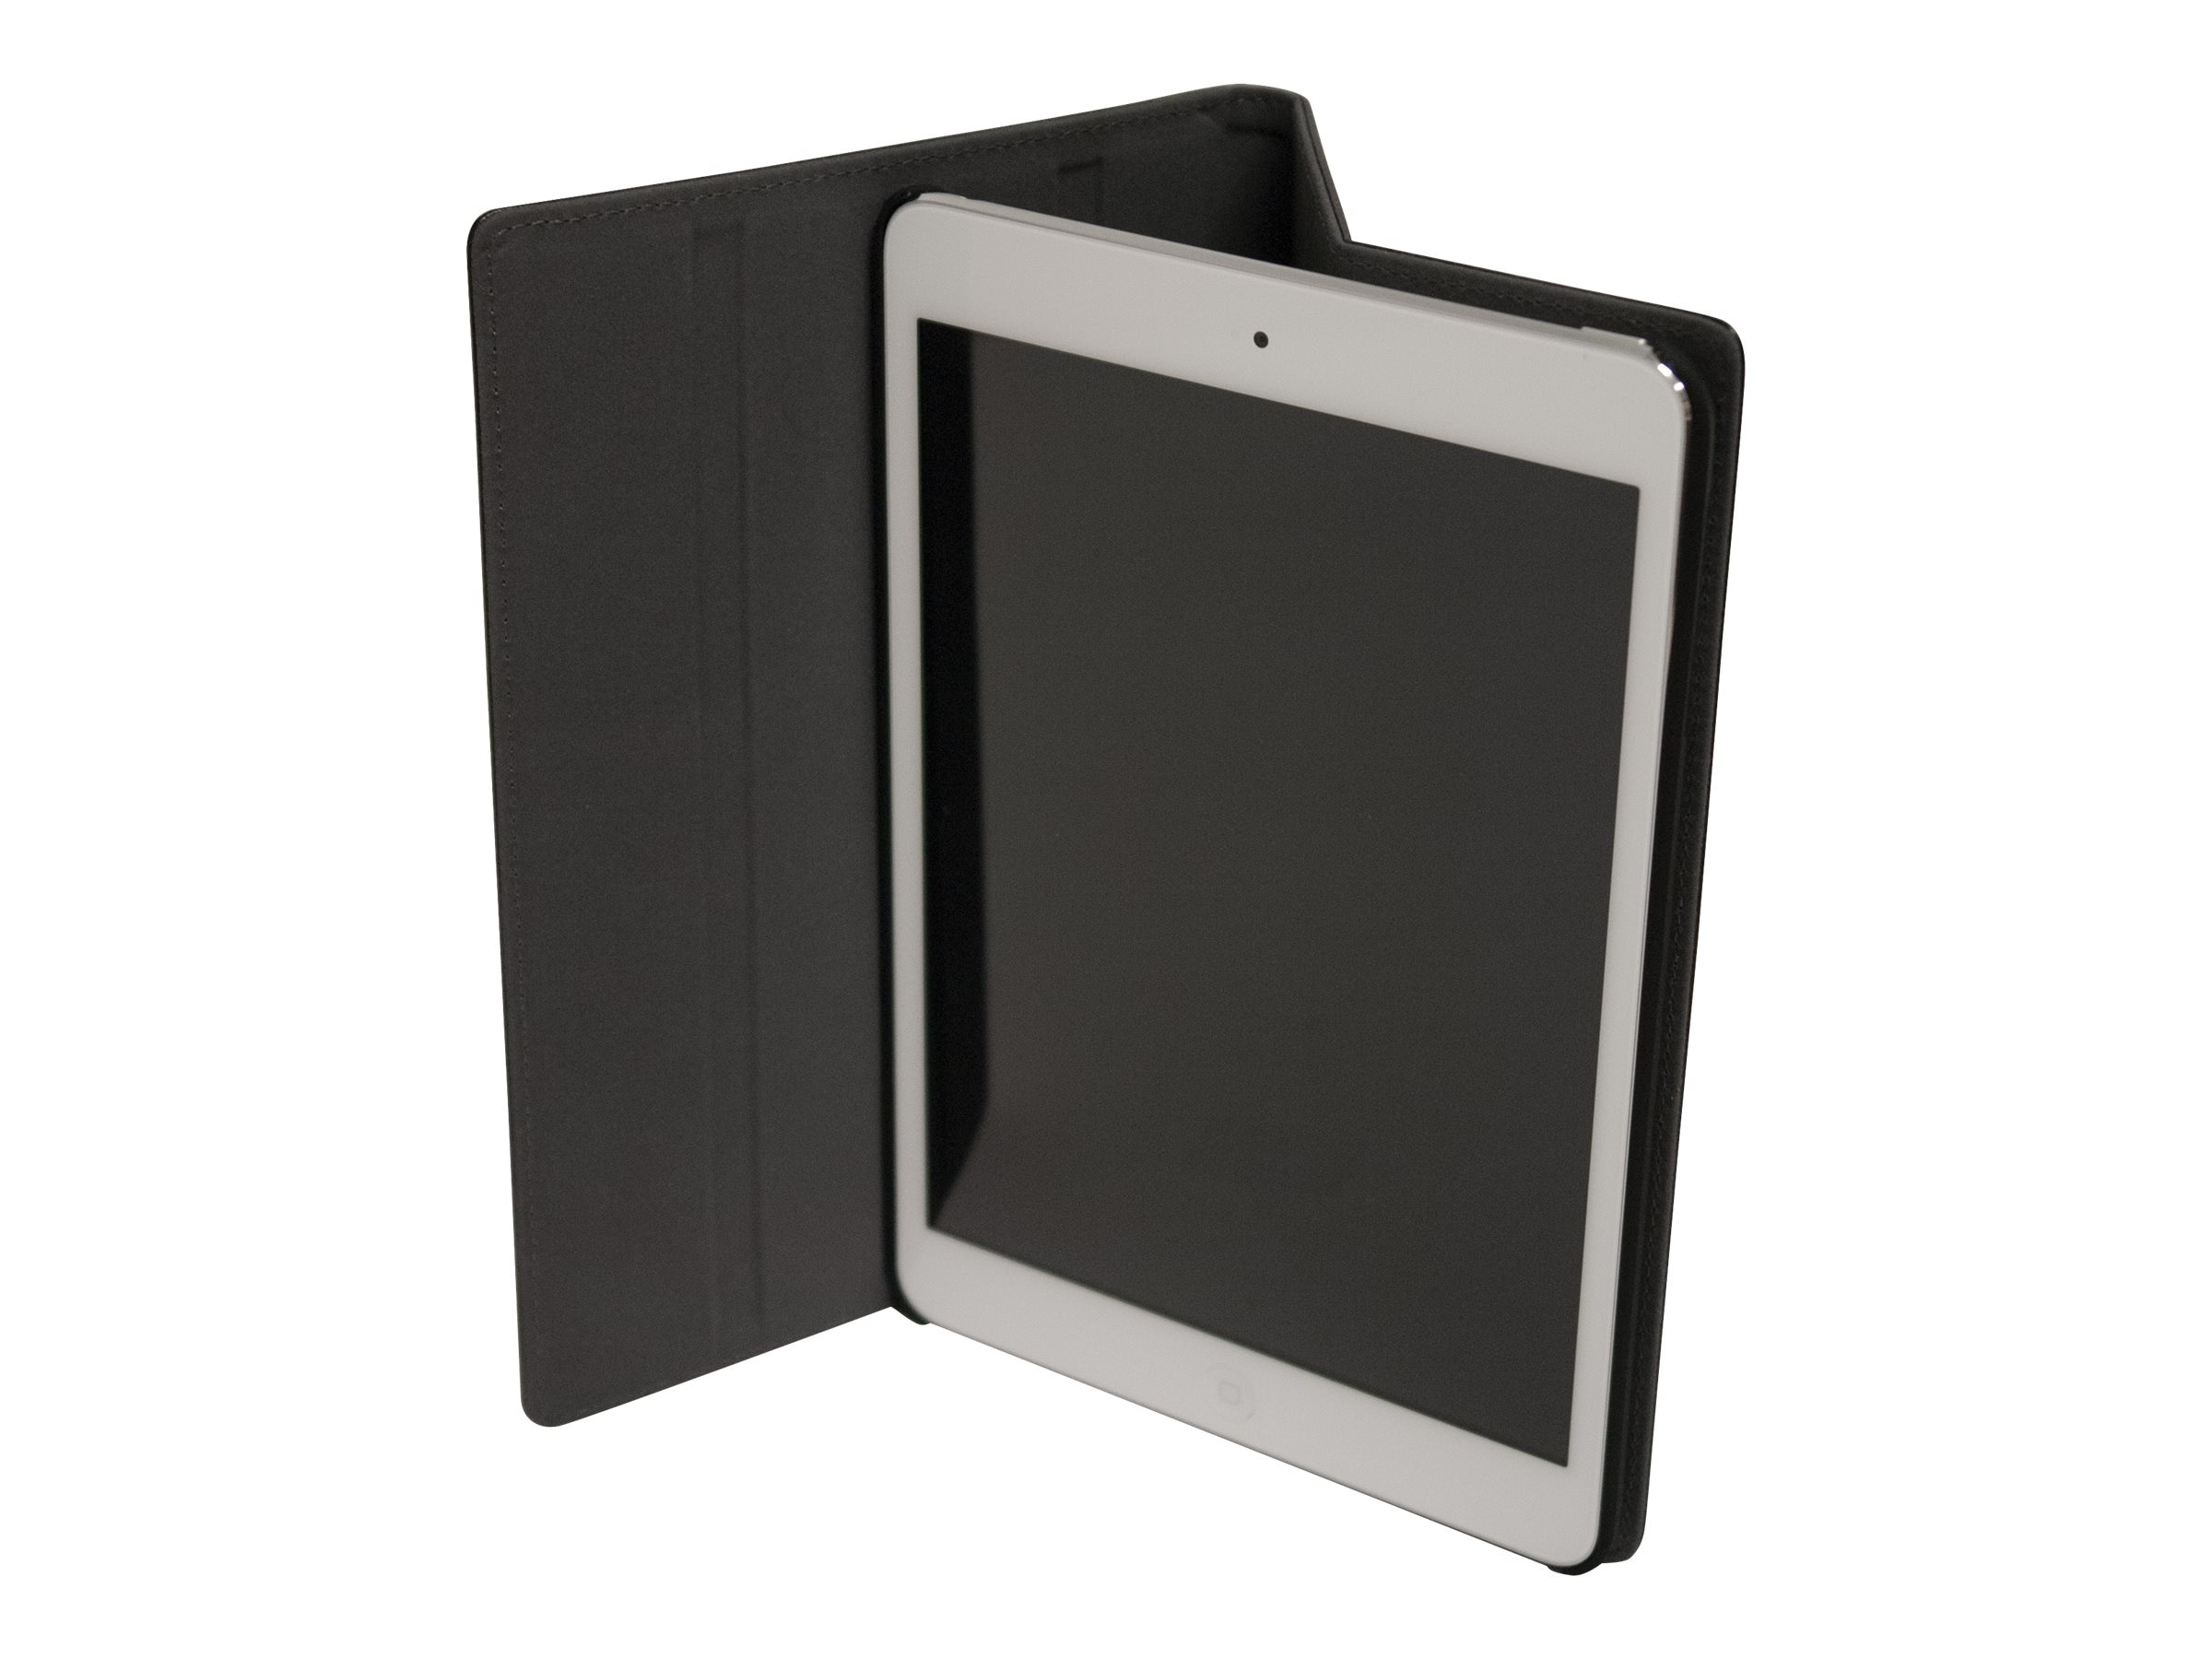 Mobile Edge Deluxe Slimfit for iPad Air, MEIAC1